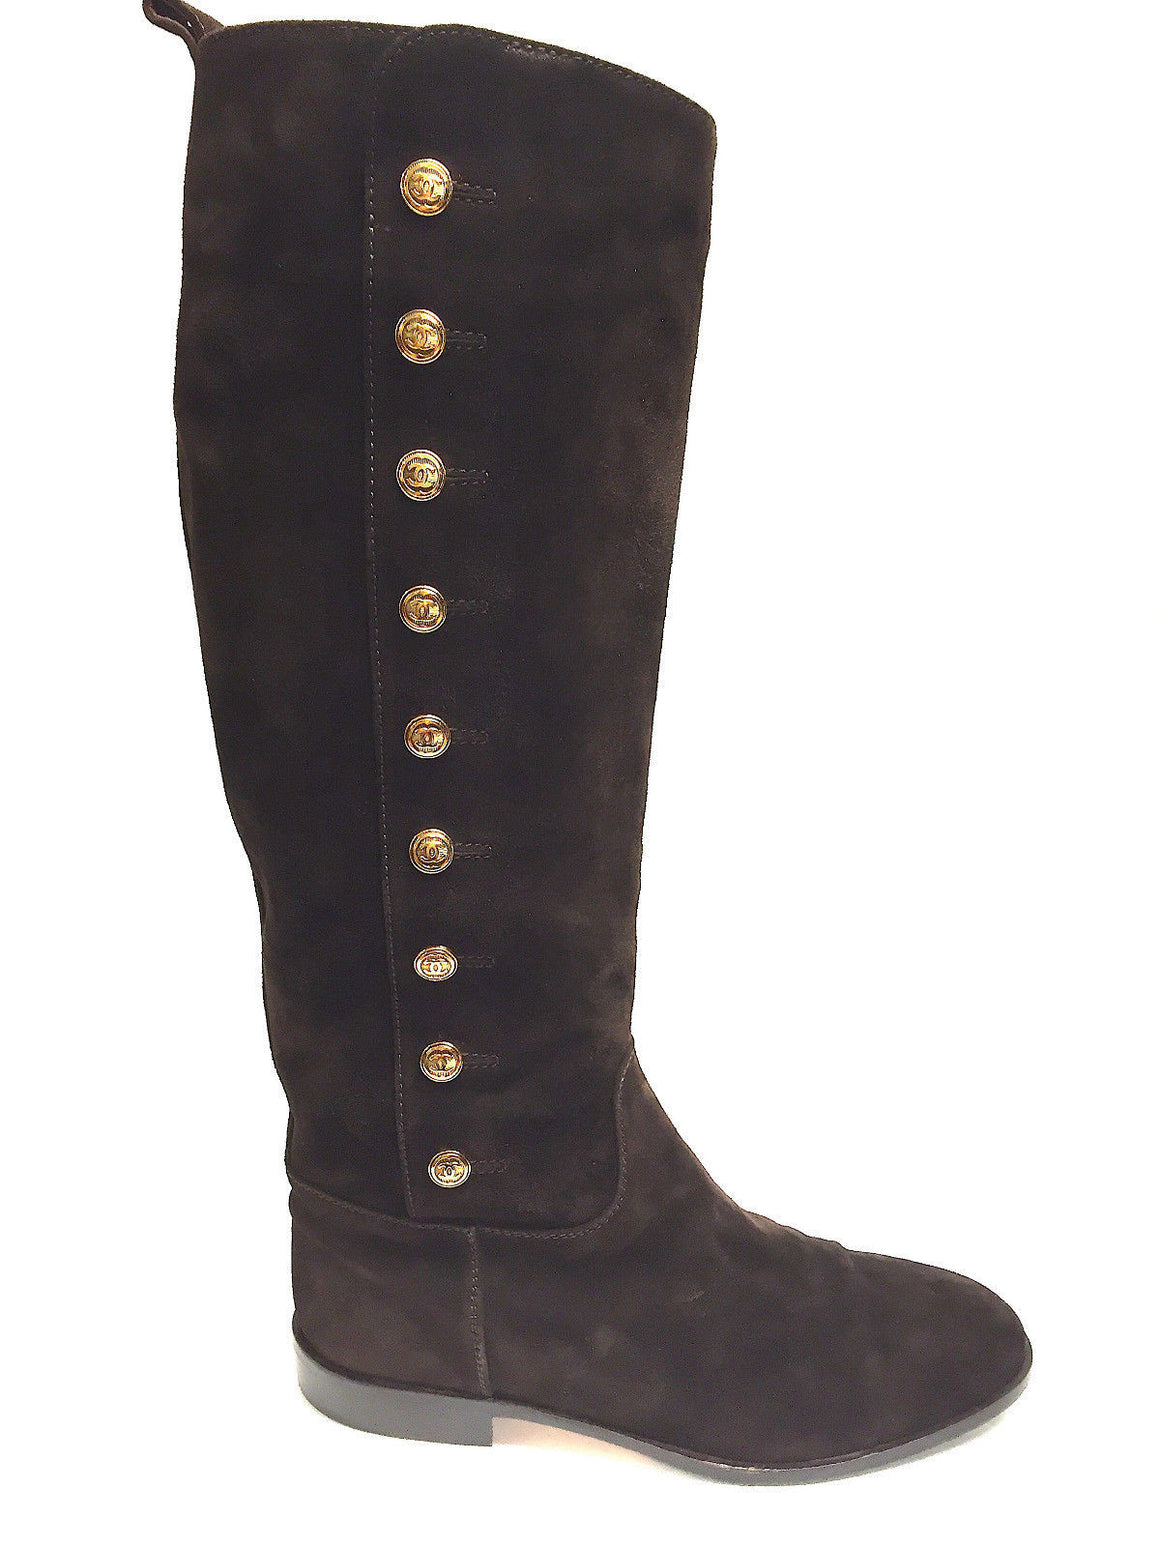 bisbiz.com CHANEL  Rare  Brown Suede Most-Coveted Gold CC Buttons Pull-on Riding Boots Size: 39.5 / 9.5 - Bis Luxury Resale